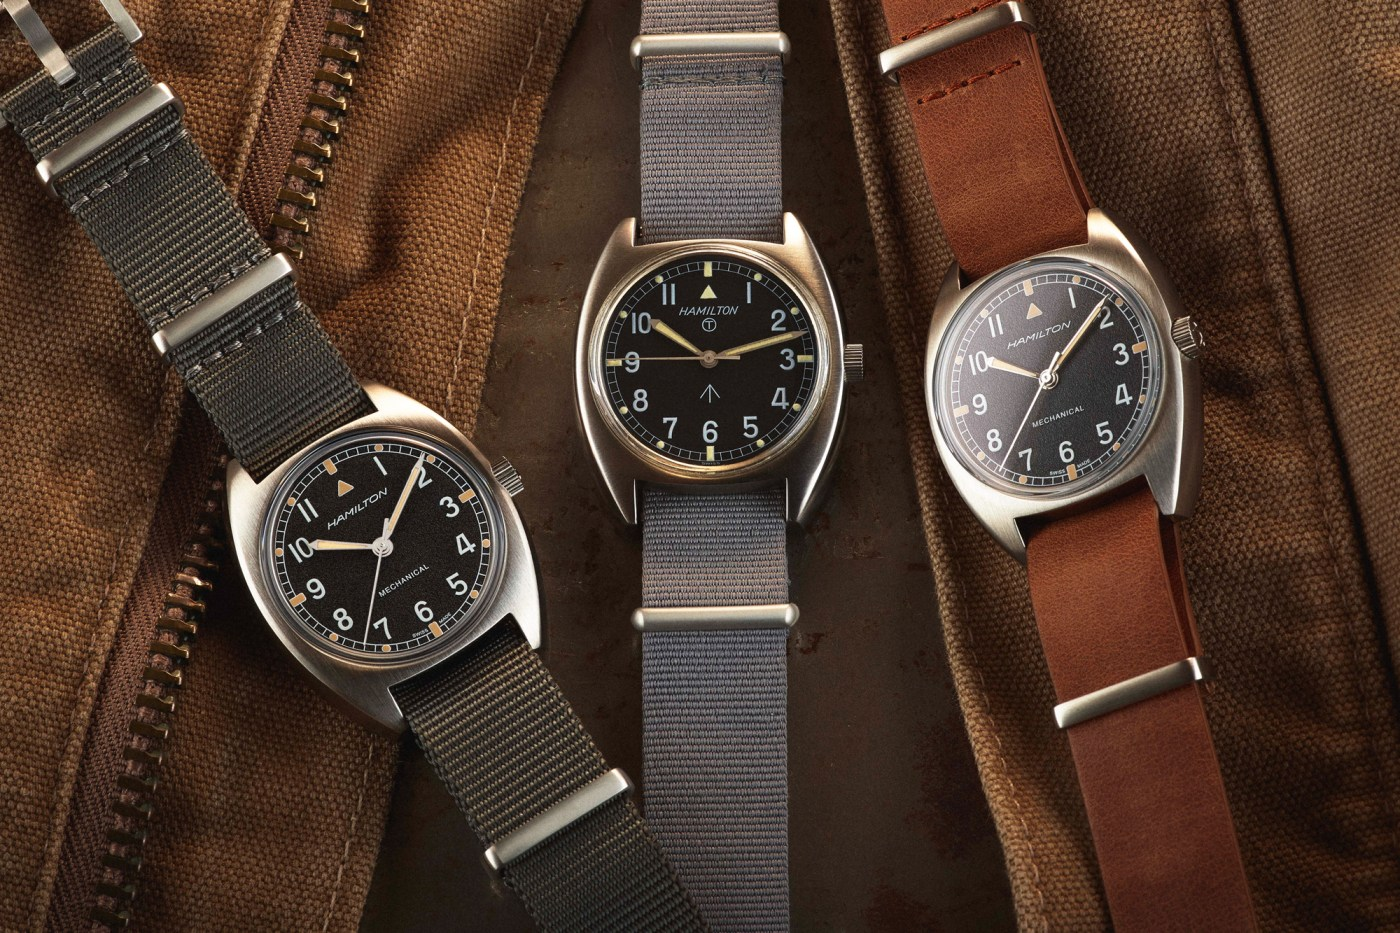 2019 Hamilton Khaki Pilot Pioneer collection